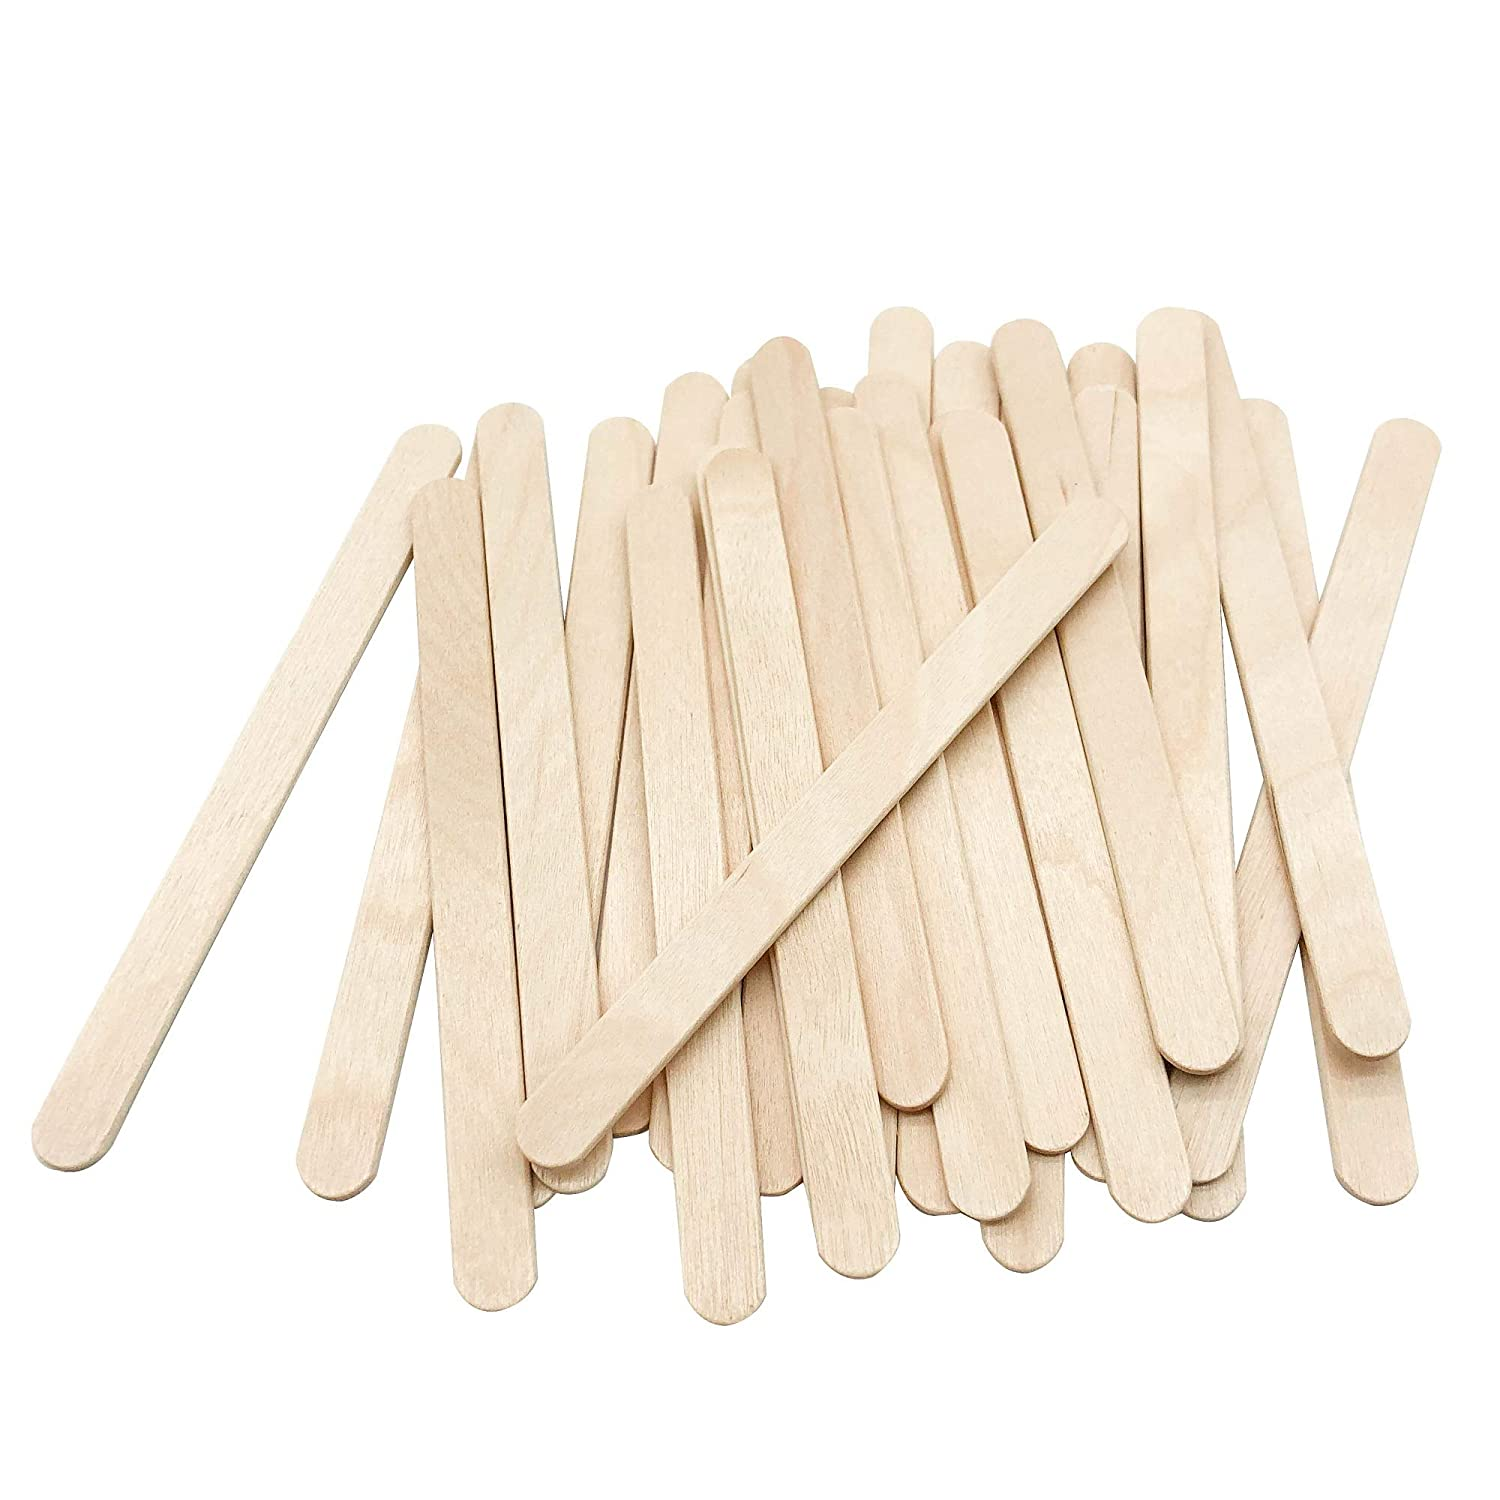 200 Pcs Craft Sticks Ice Cream Sticks Natural Wood Popsicle Craft Sticks 4.5 inch Length Treat Sticks Ice Pop Sticks for DIY Crafts